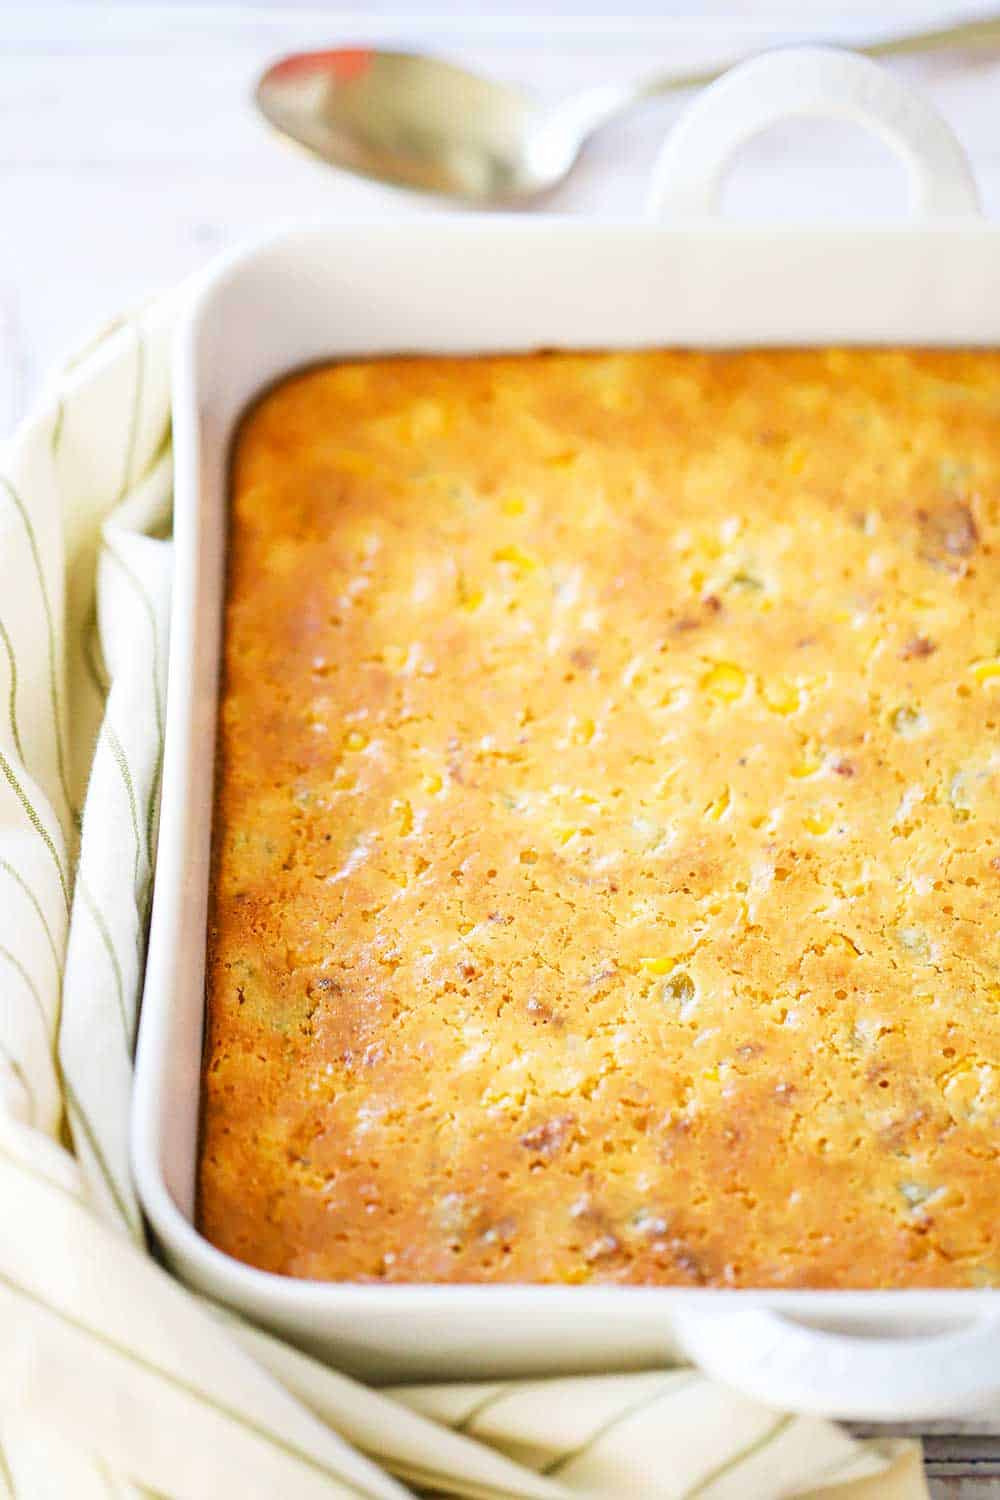 A fully cooked corn casserole in a square white baking dish next to a gold serving spoon.